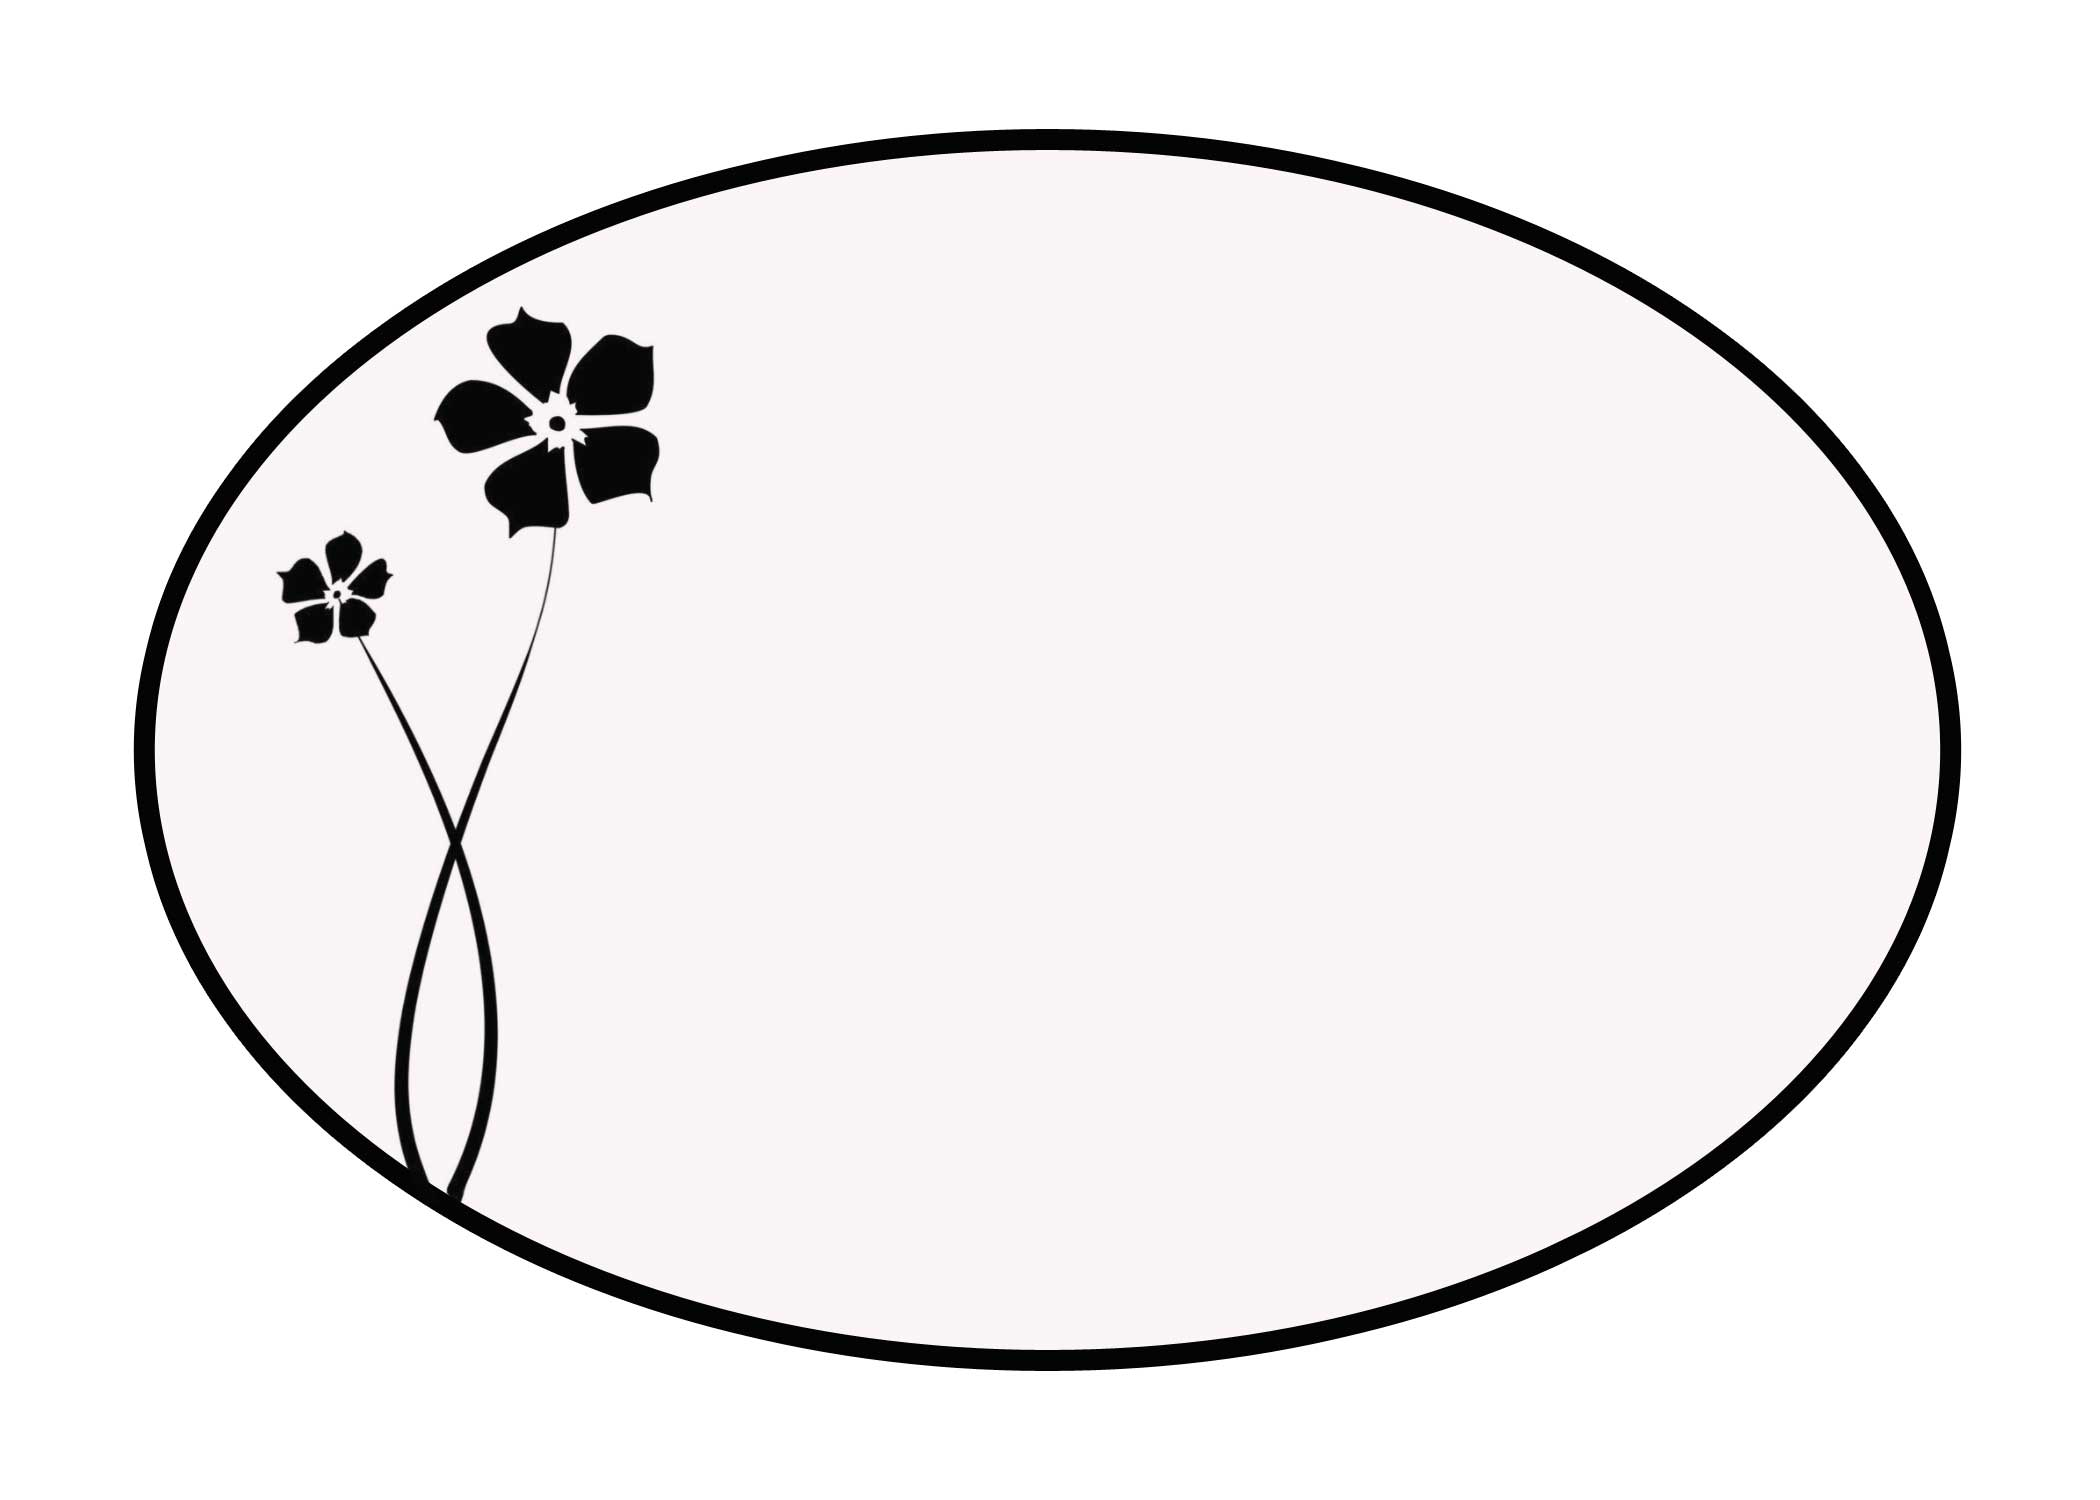 Egg shaped clipart Clipground